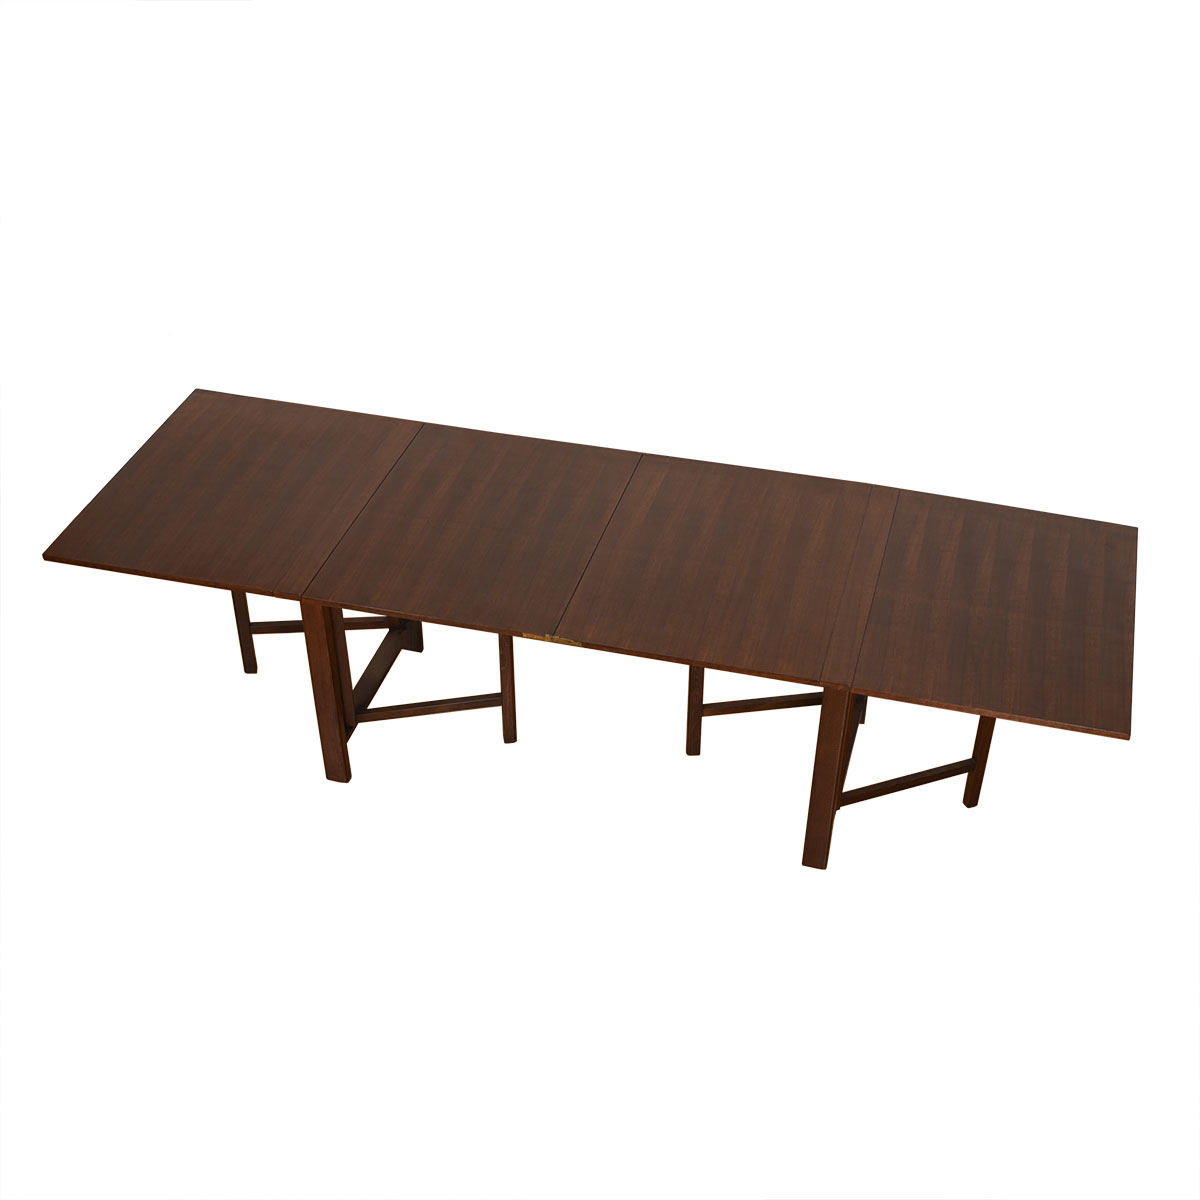 Swedish Super-Expanding 'Maria Flap' Walnut Dining Table